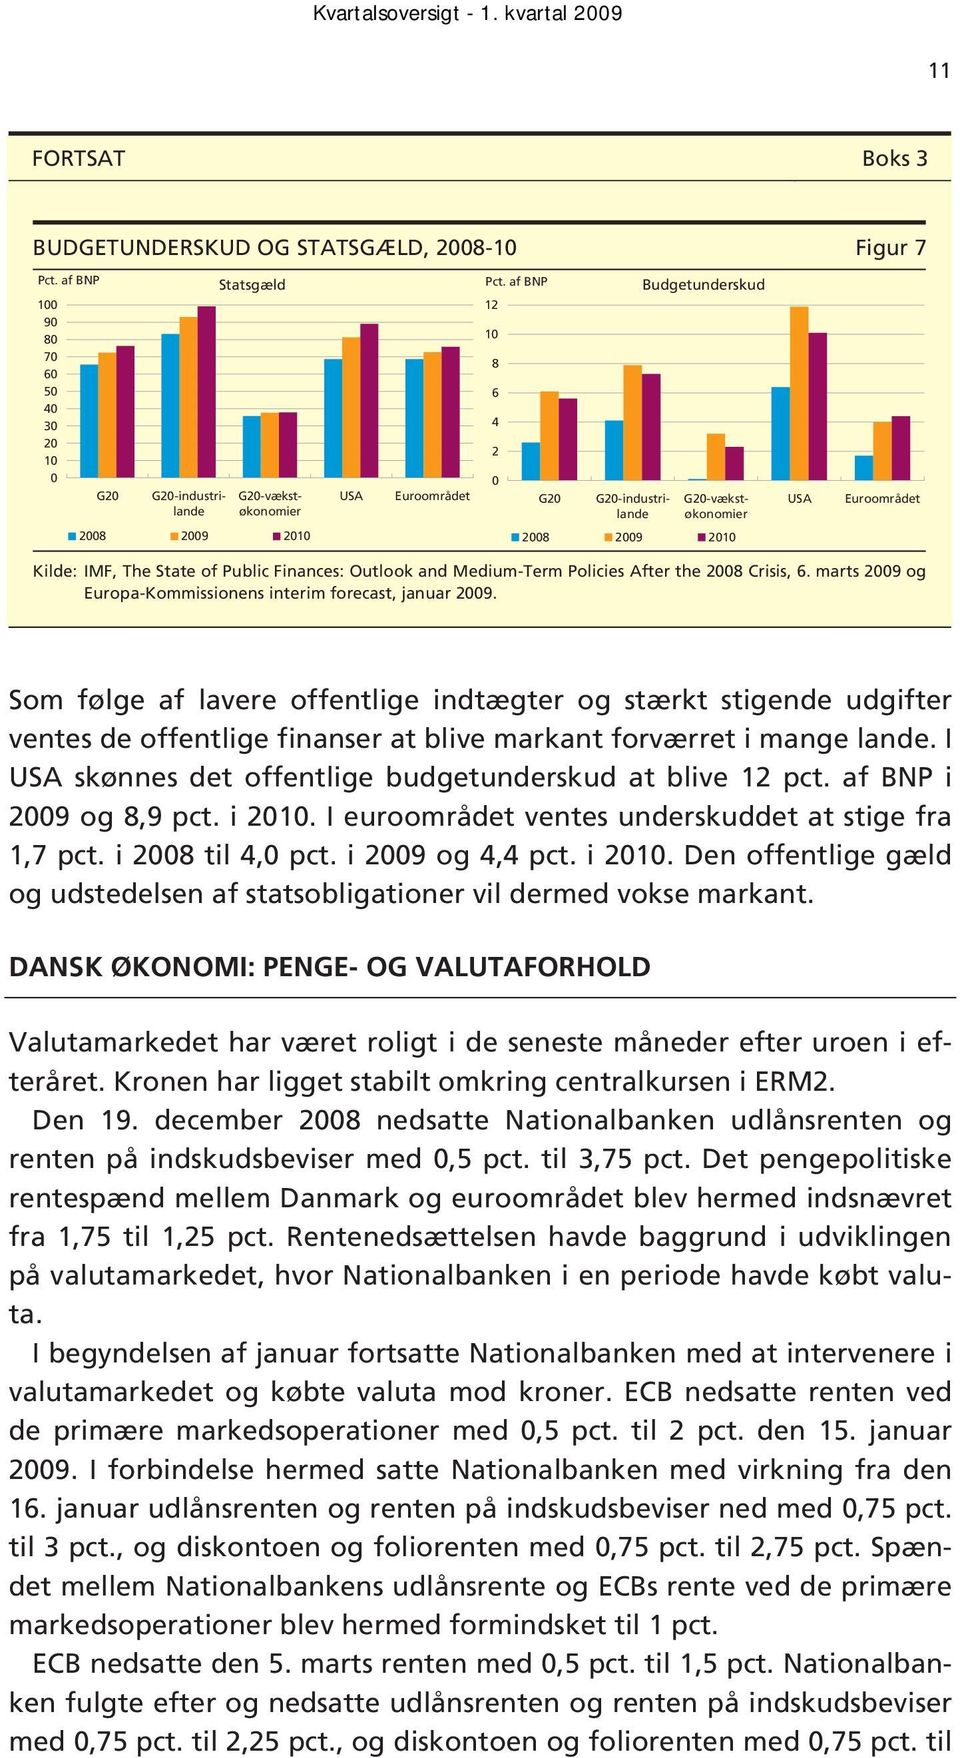 Finances: Outlook and Medium-Term Policies After the 2008 Crisis, 6. marts 2009 og Europa-Kommissionens interim forecast, januar 2009.